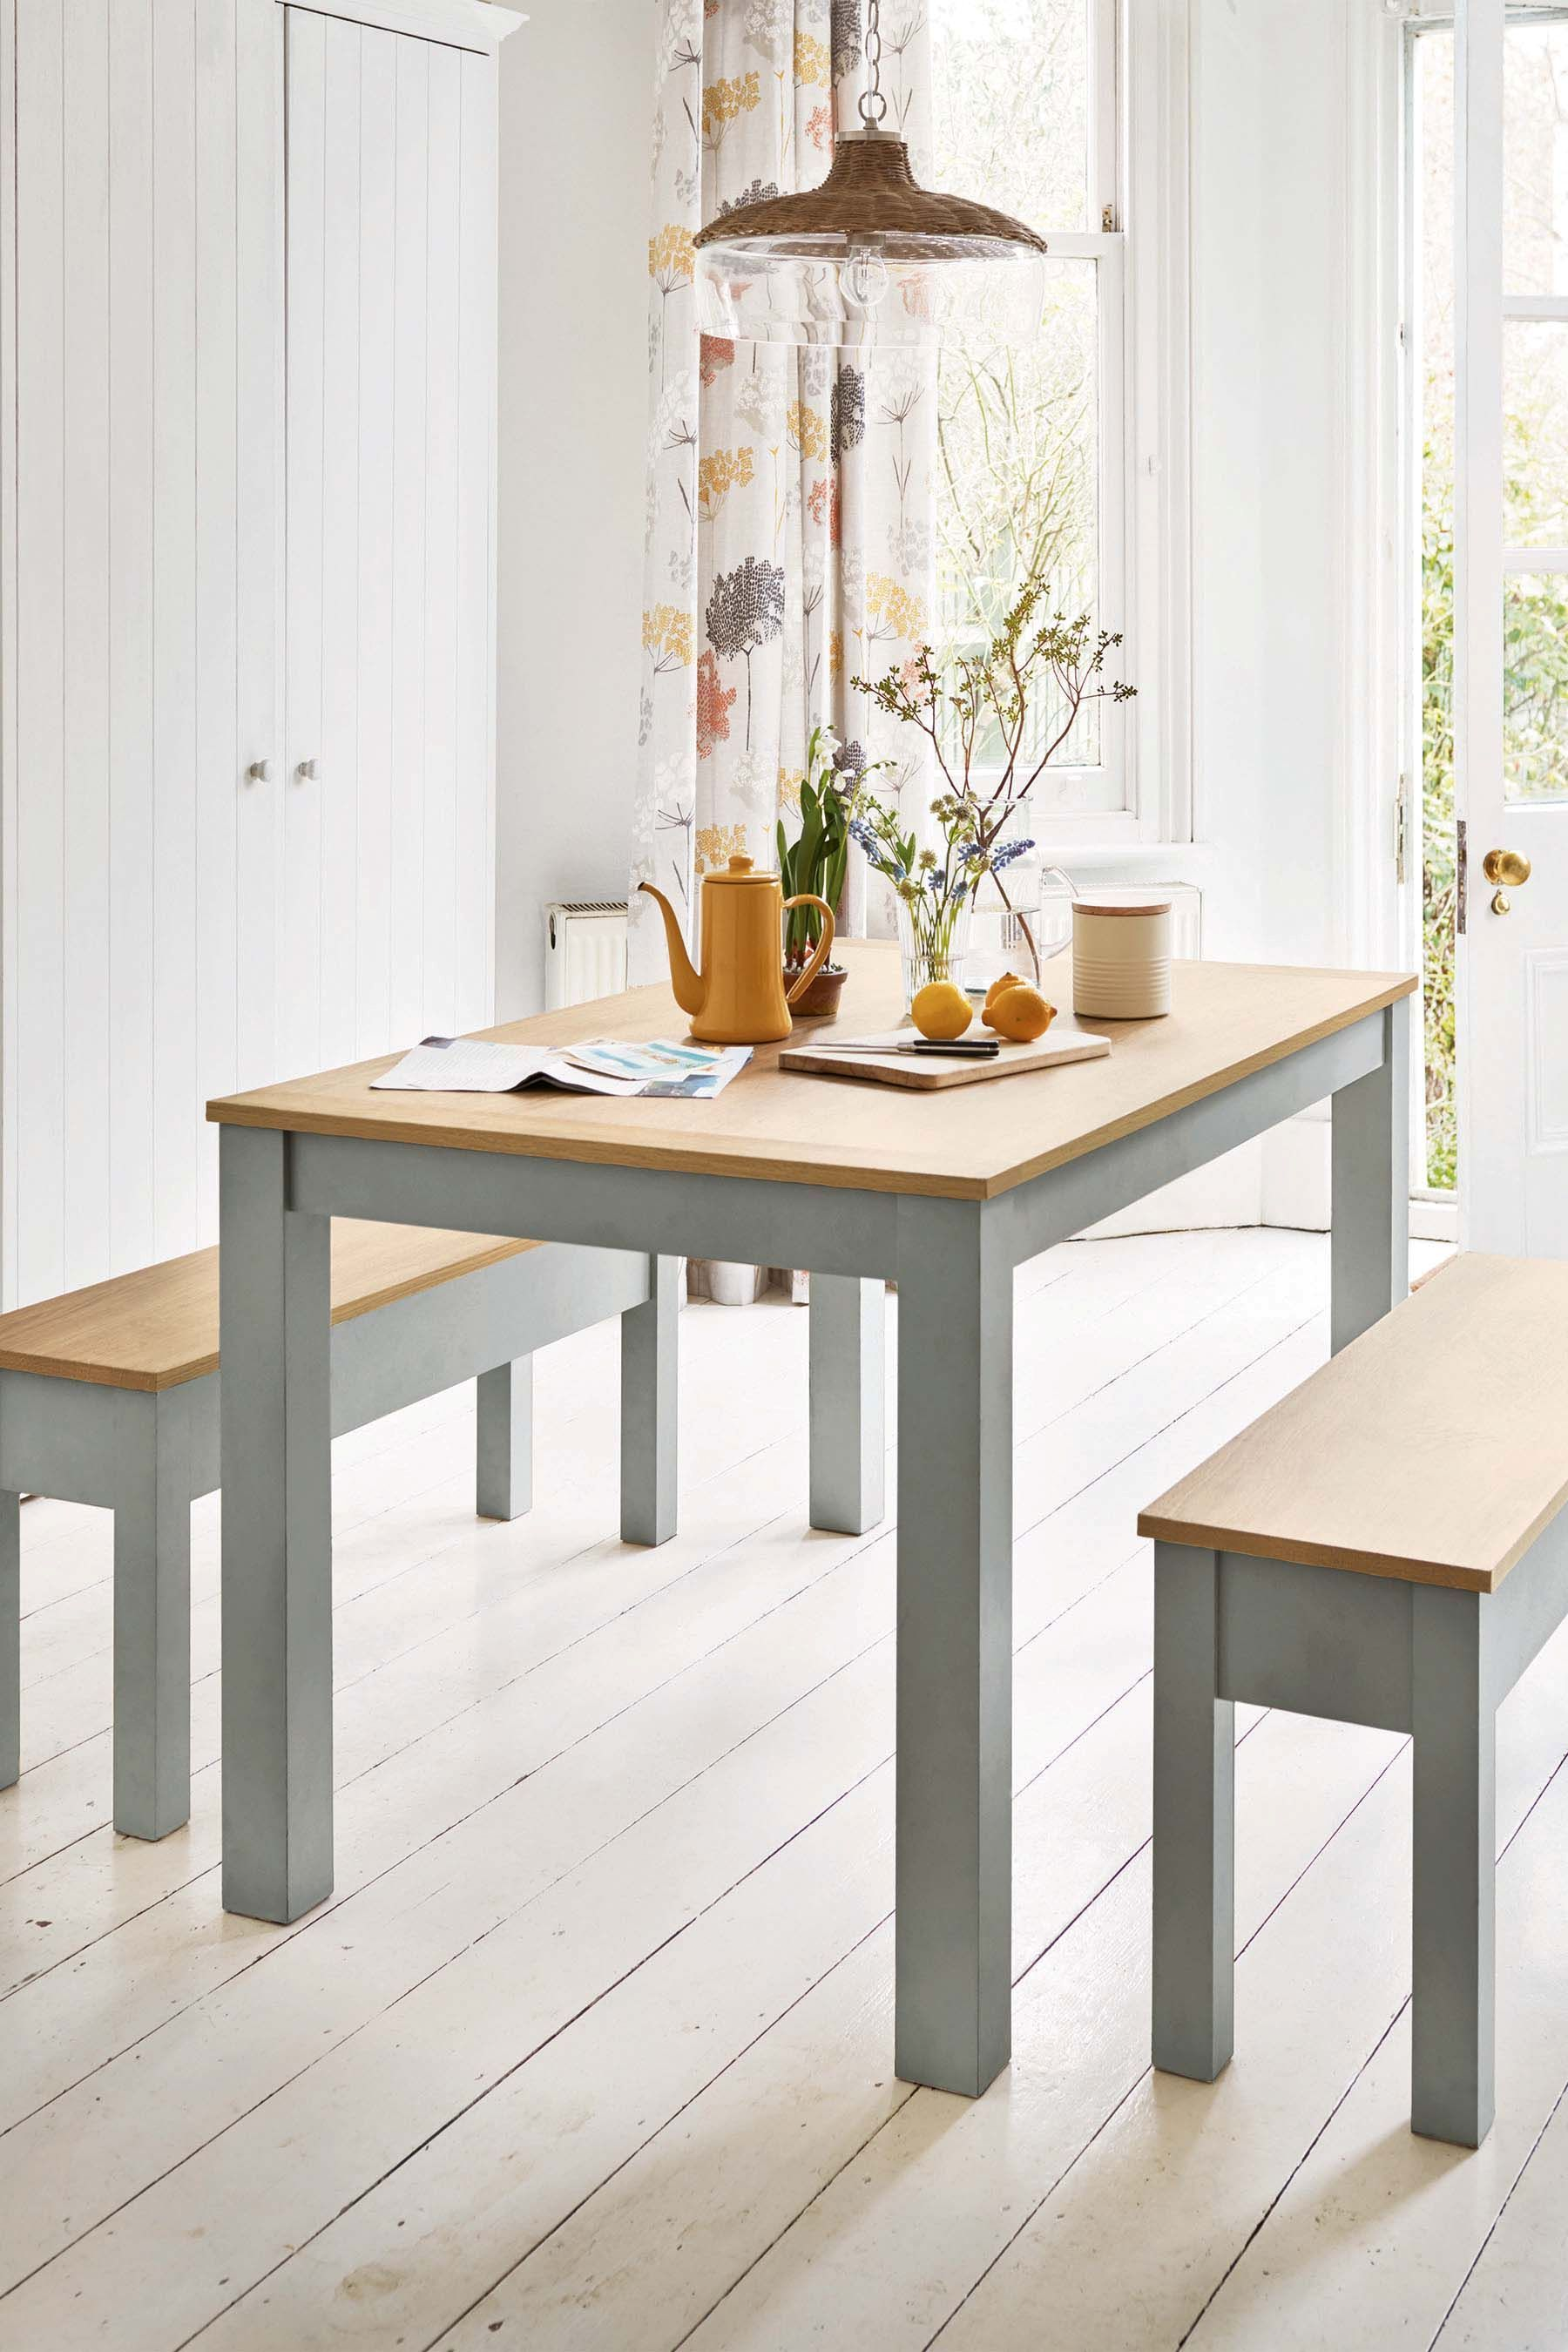 Surprising Next Malvern Dining Table And Bench Set Grey Products In Alphanode Cool Chair Designs And Ideas Alphanodeonline